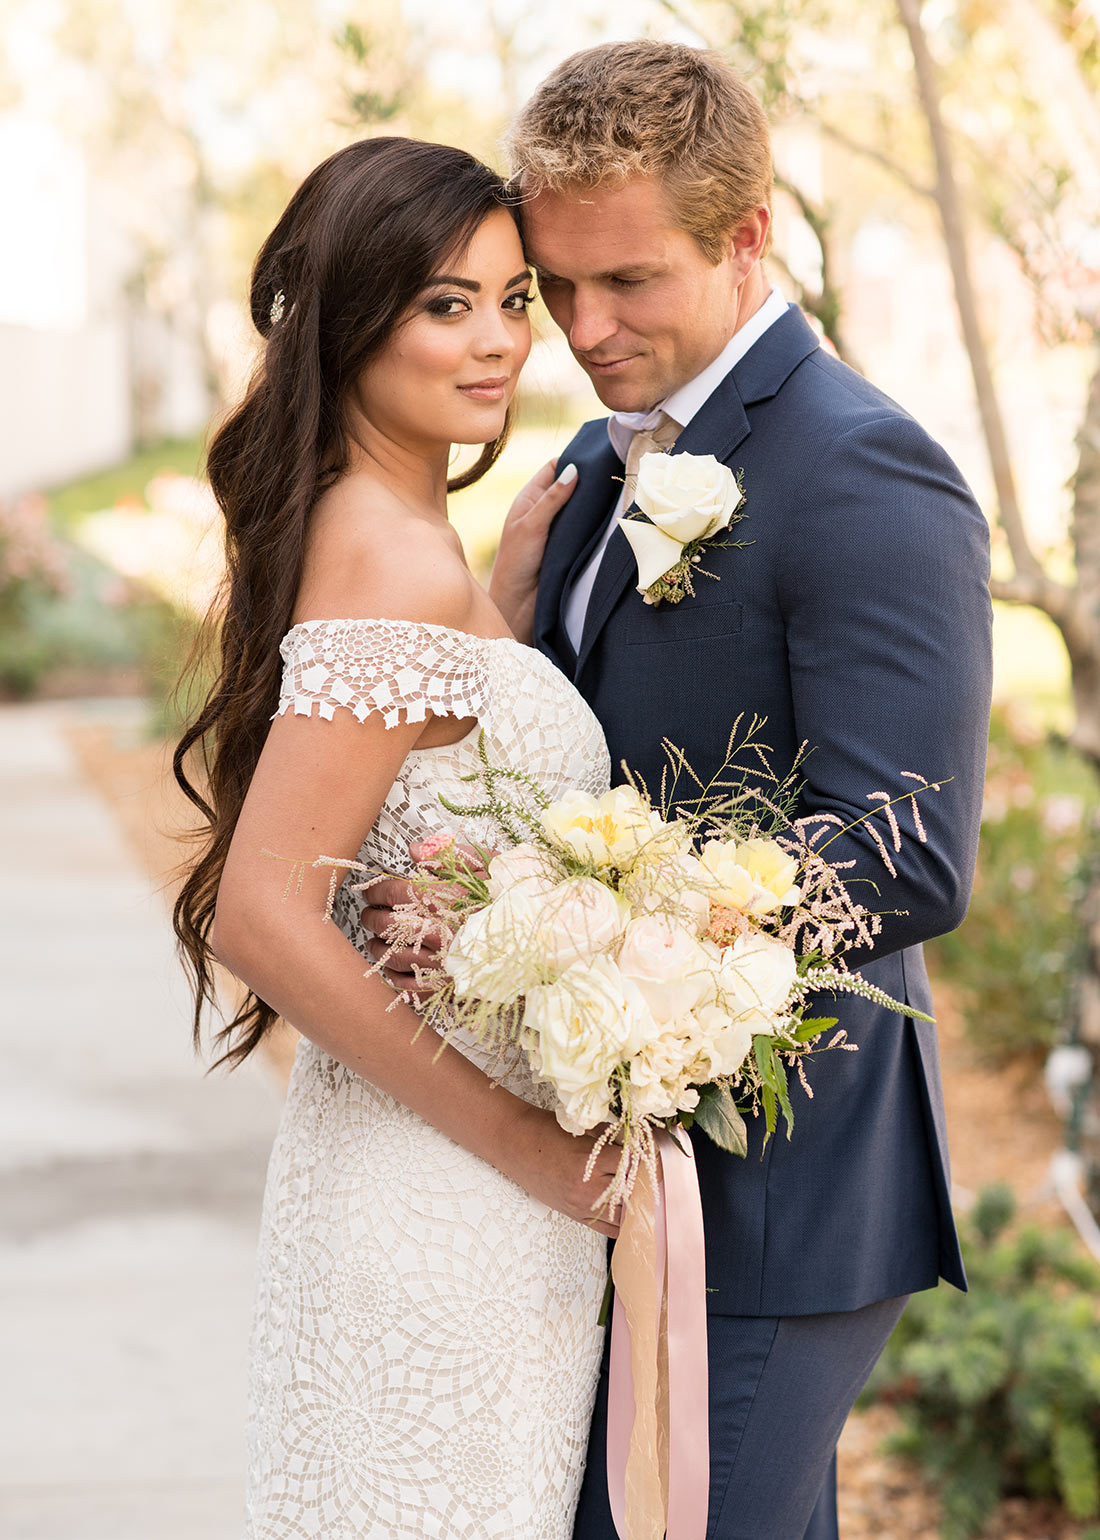 An image of a groom and bride who is holding a white rose bouquet